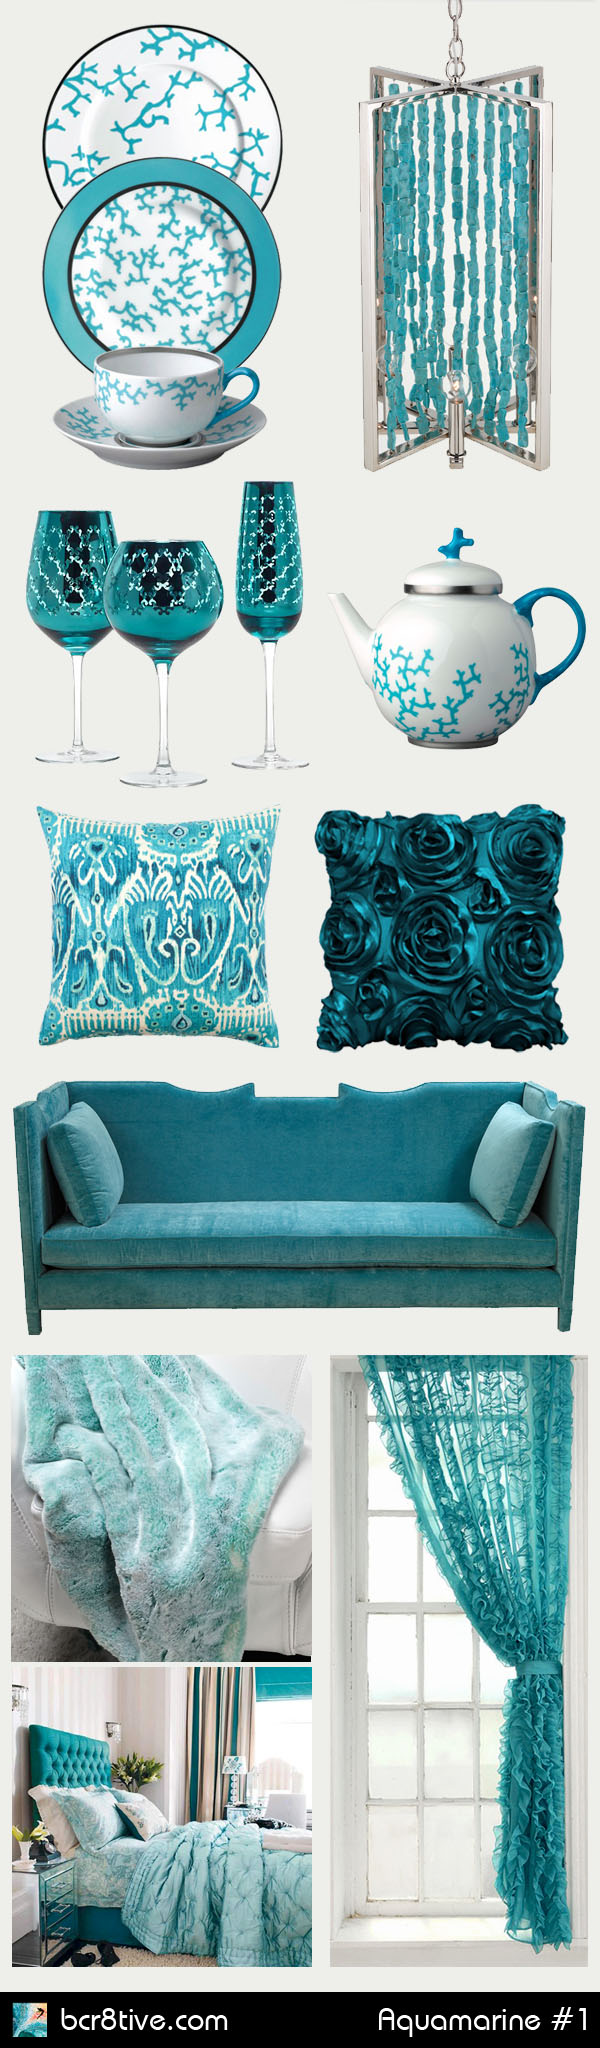 Home Decorating with Aquamarine & Turquoise - bcr8tive